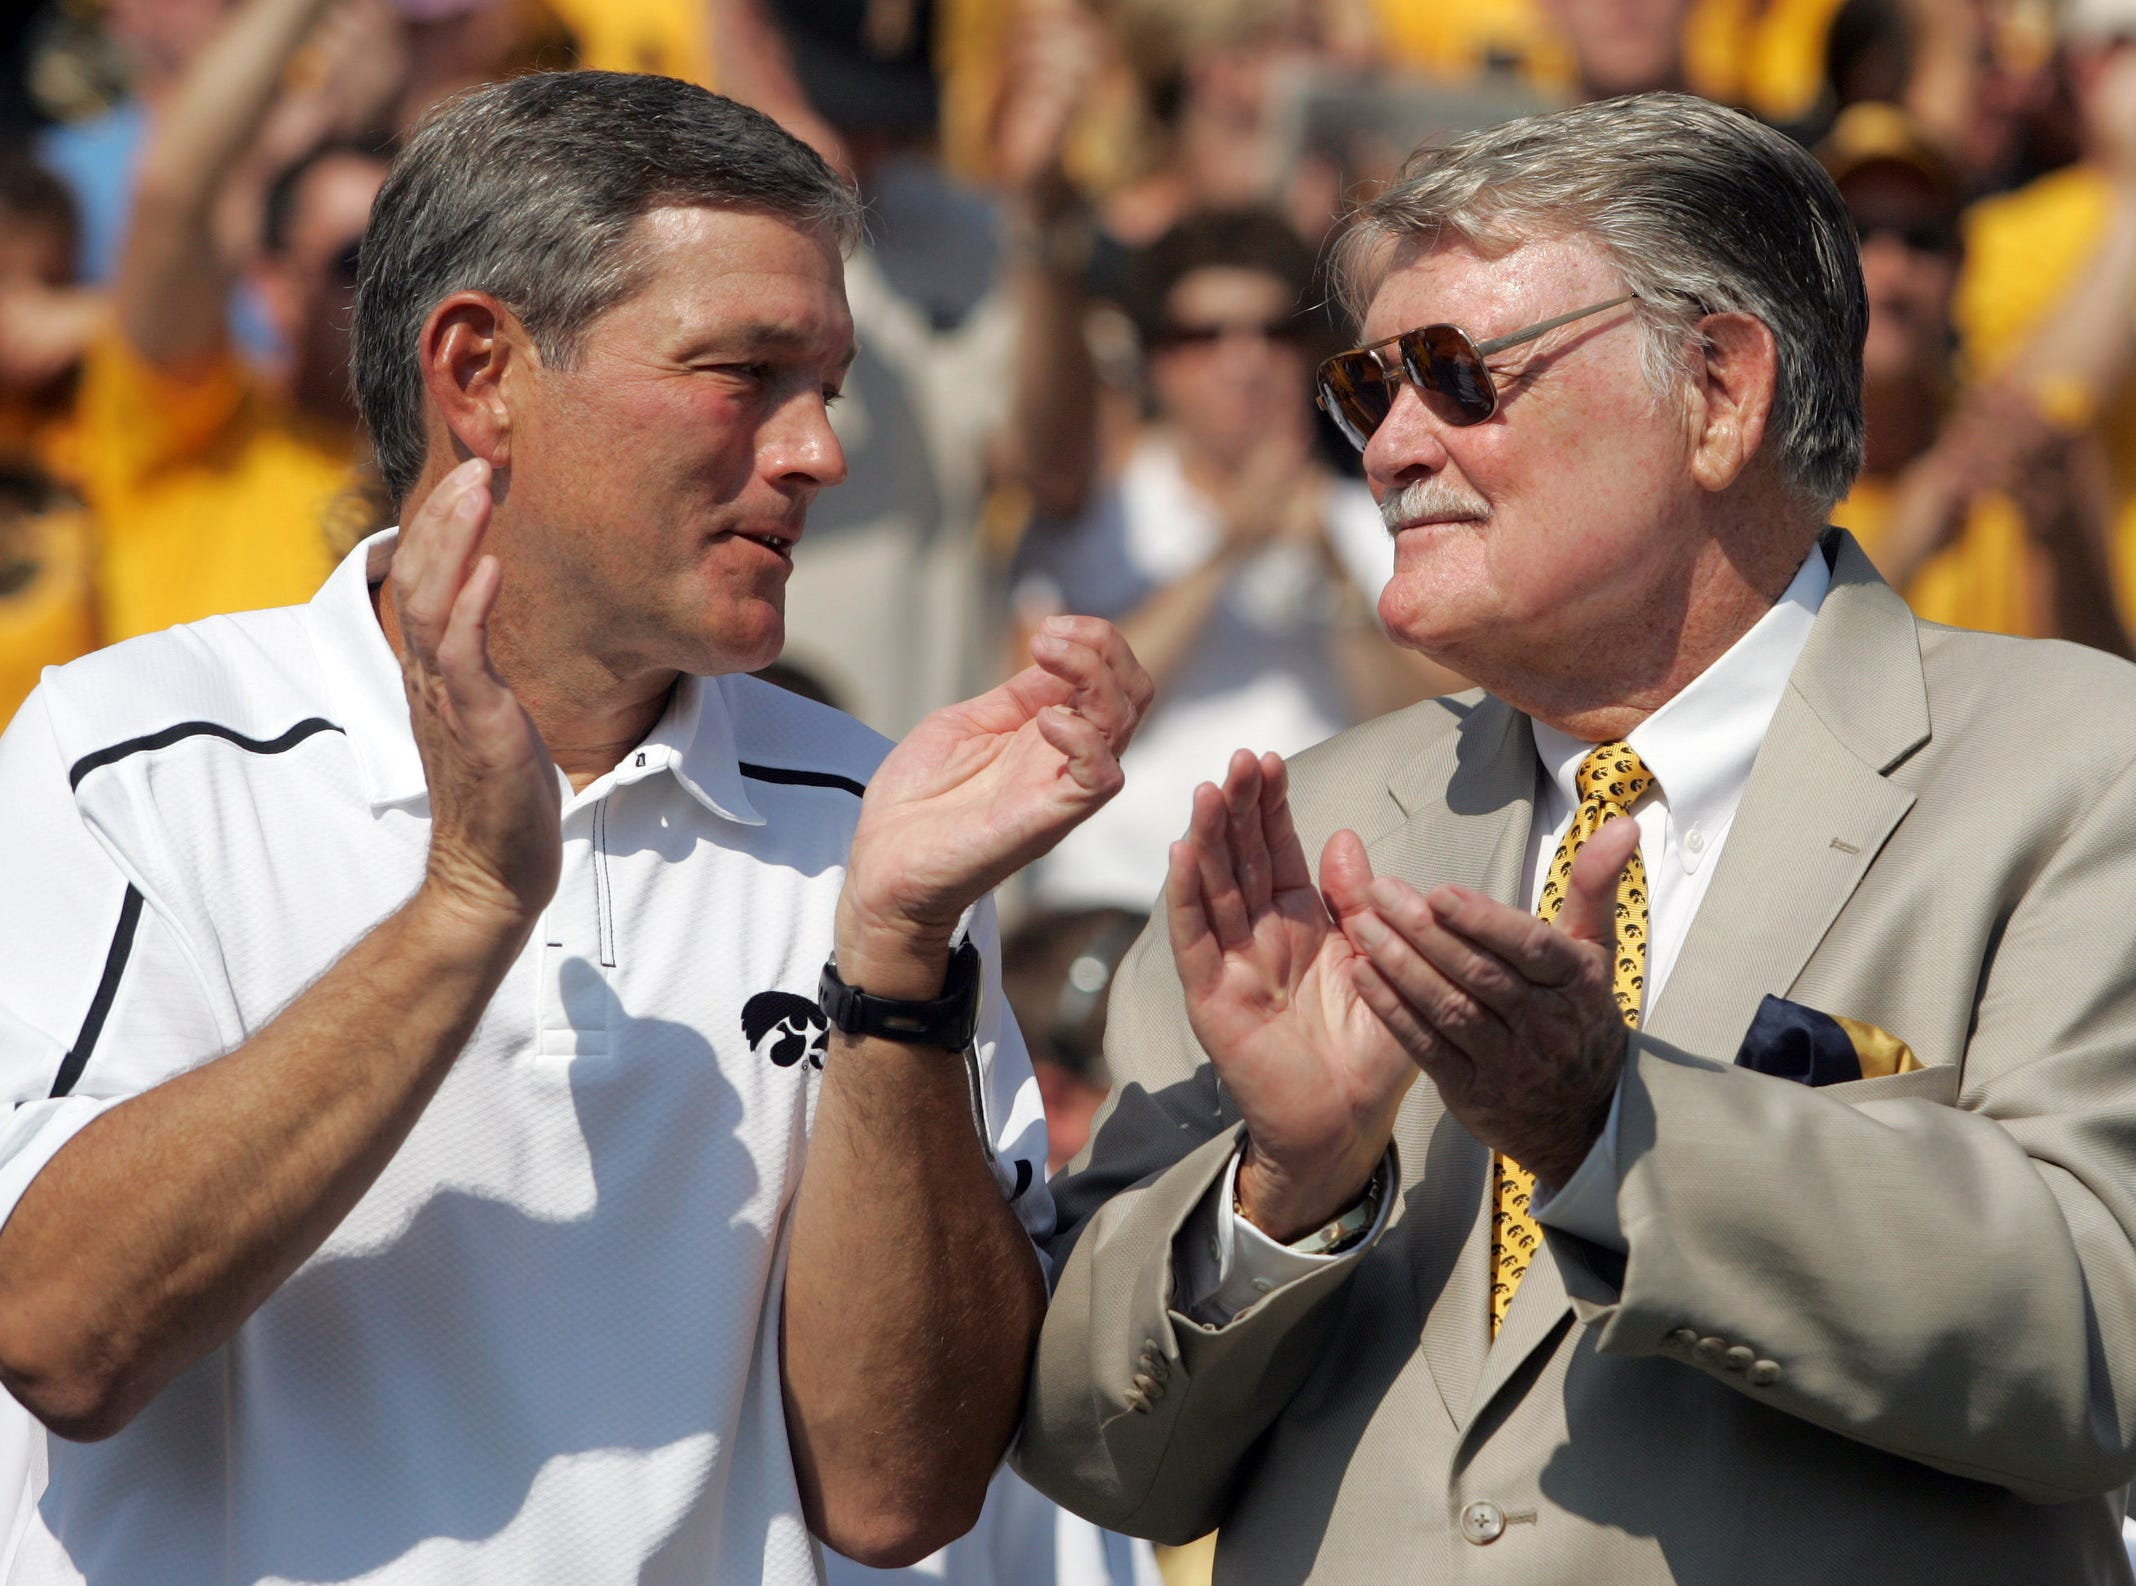 Iowa head coach Kirk Ferentz applauds with former Iowa coach Hayden Fry prior to kickoff Sept. 5, 2009 in Iowa City.  Fry was an honorary team captain for the season opener.